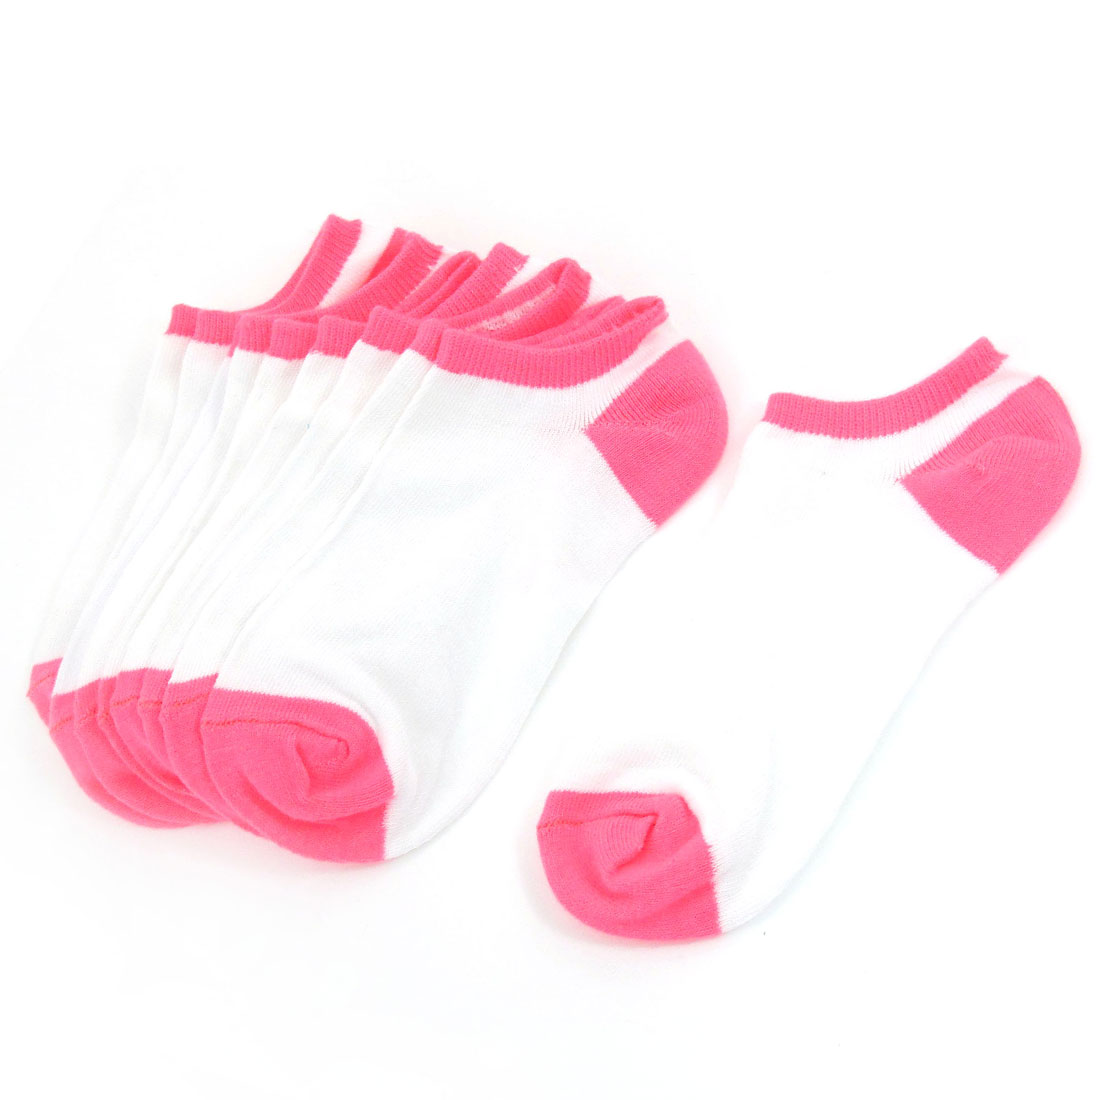 5 Pairs White Pink Elastic Cuff Low Cut Ankle Socks Hosiery for Girls